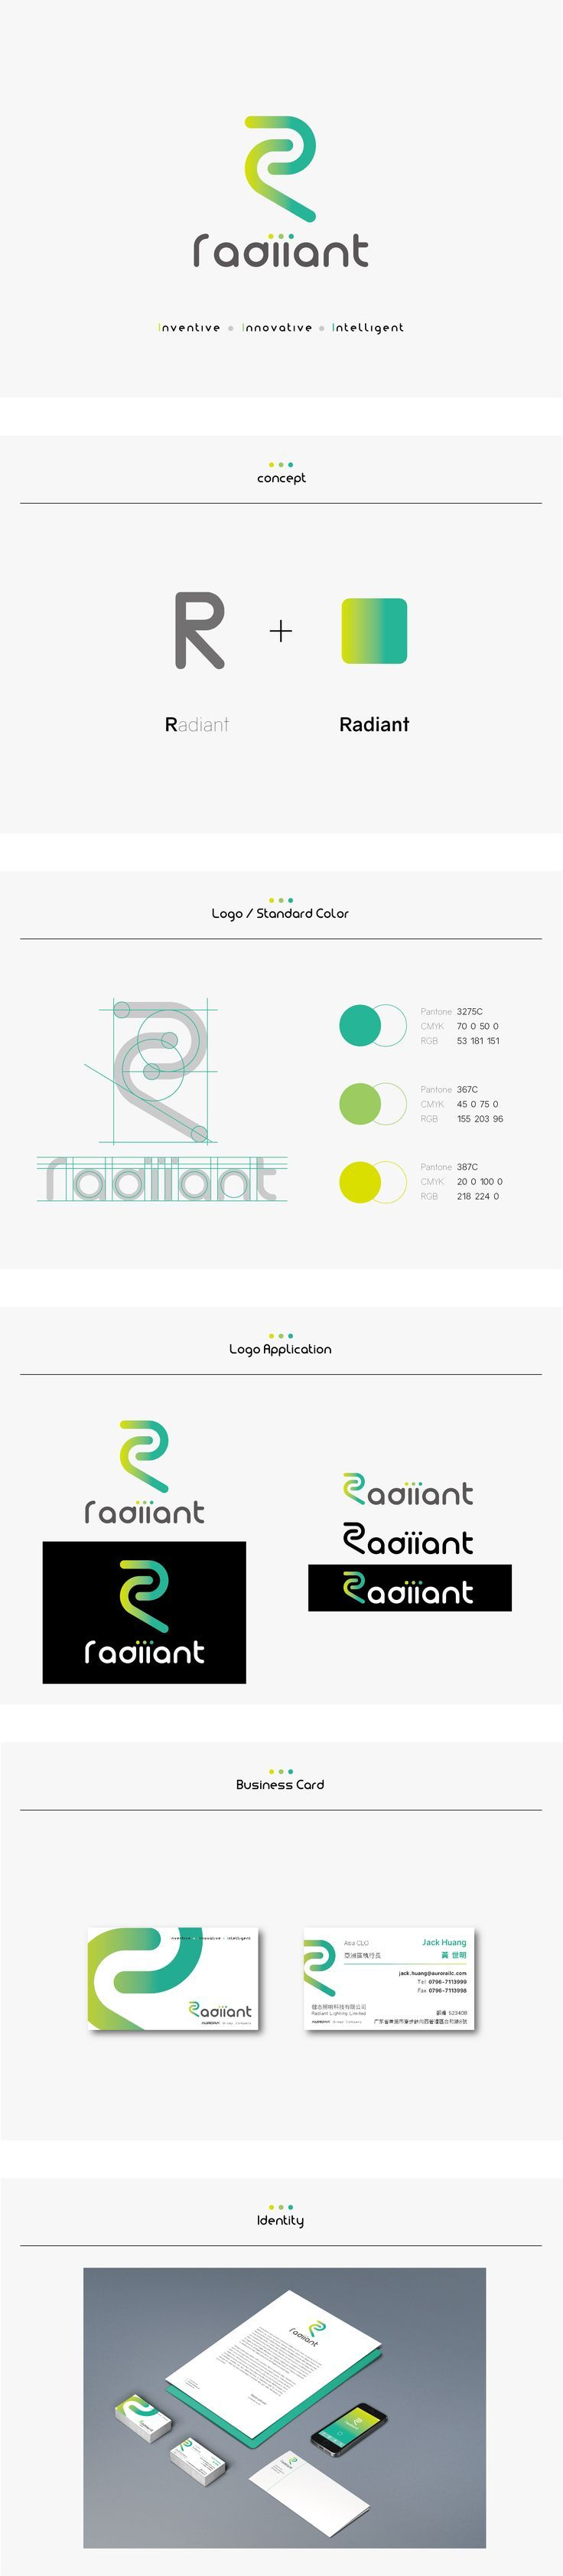 Radiiant  Logo  Identity Design Proposal